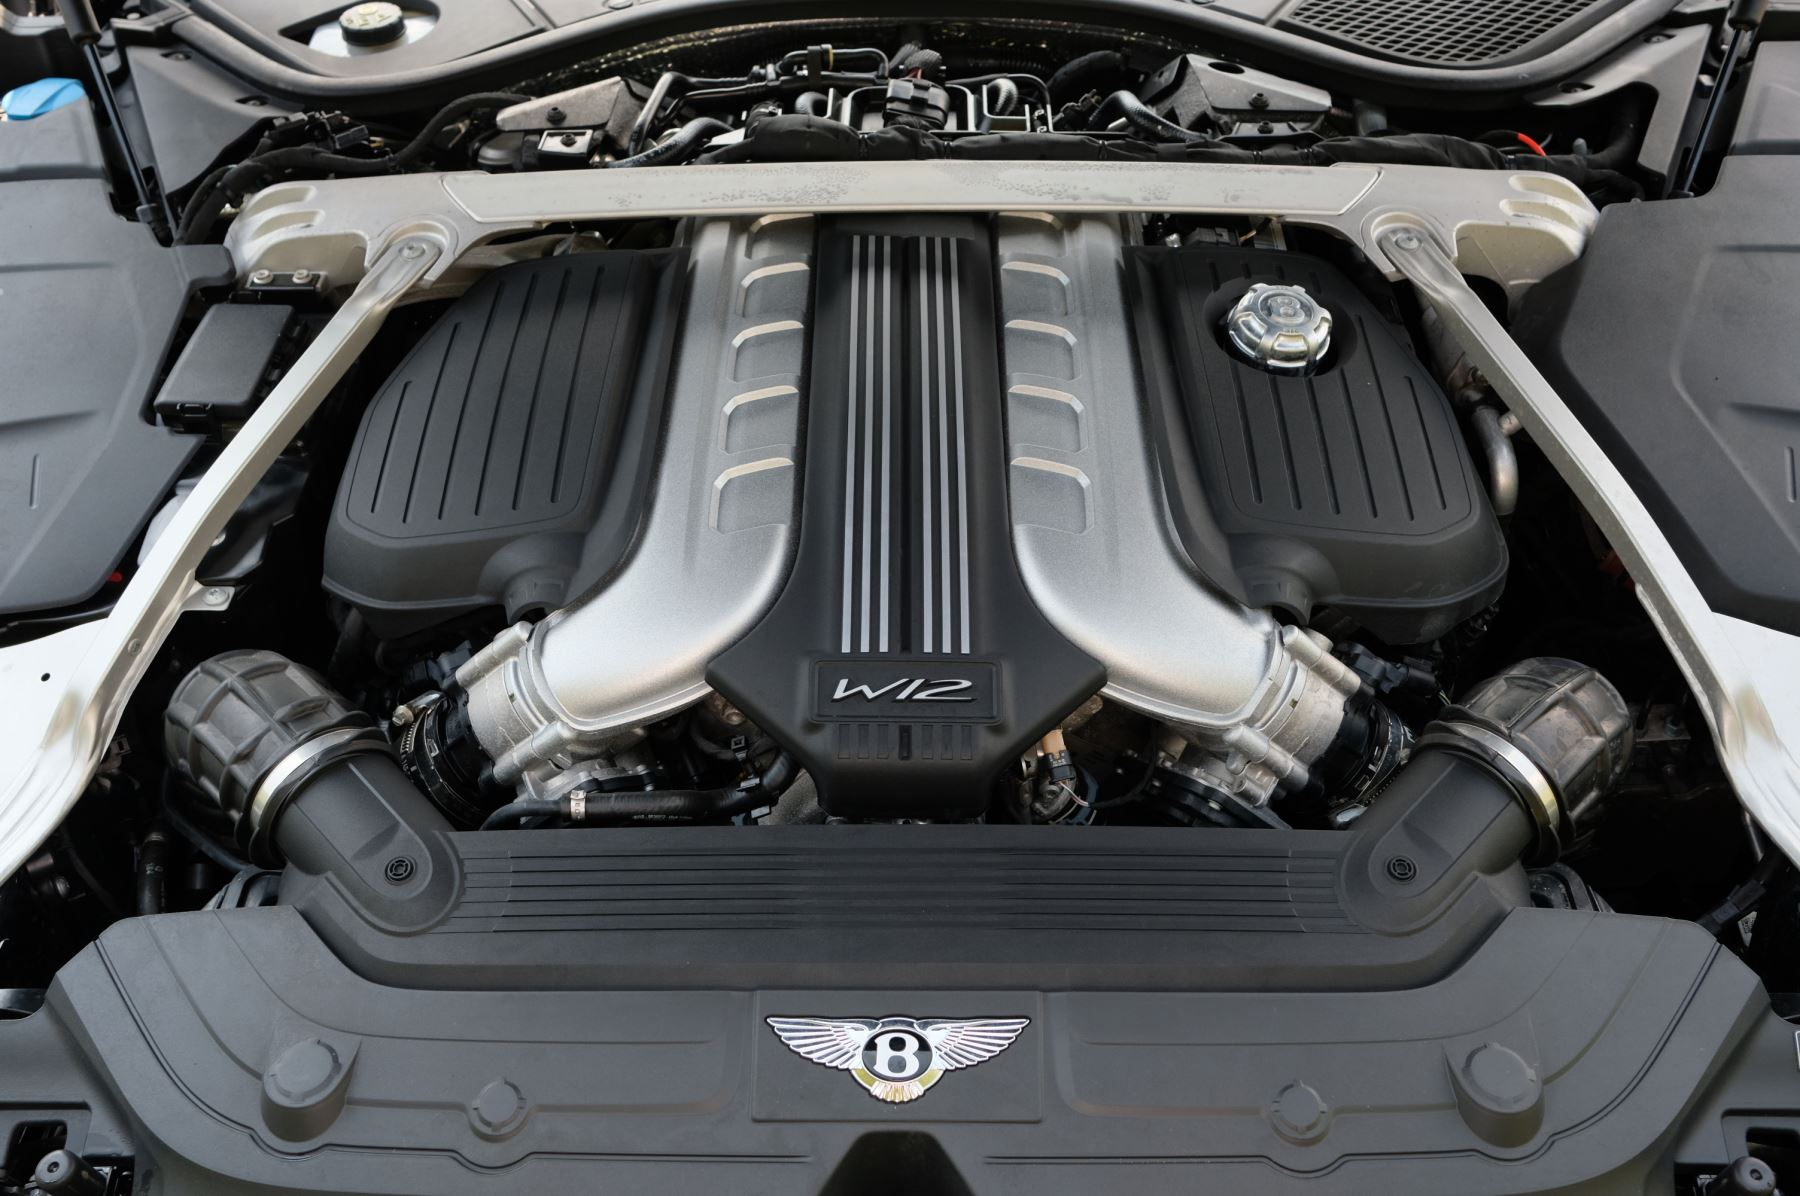 Bentley Continental GTC 6.0 W12 - Mulliner Driving Specification and Centenary Specification image 11